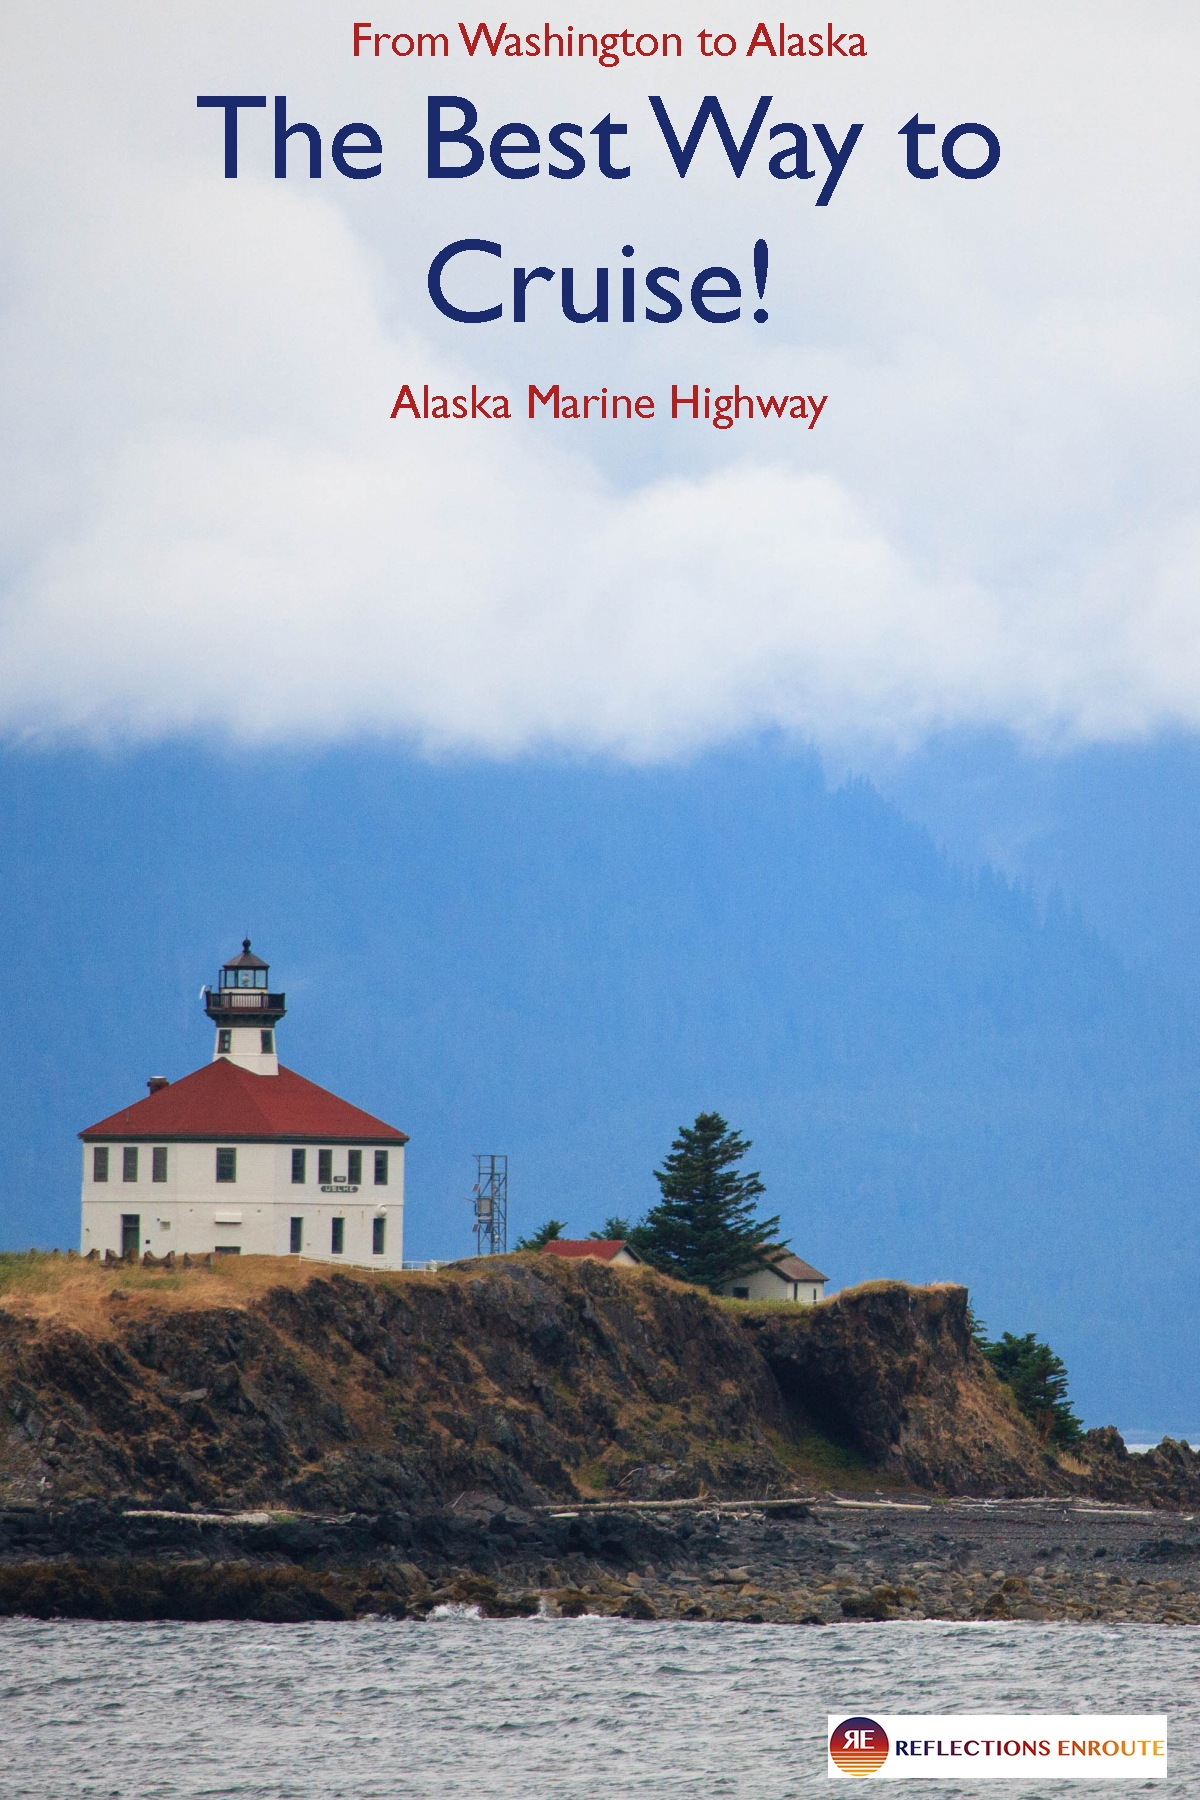 Have you always wanted to cruise to Alaska but it's just too expensive! Don't worry the Alaska Marine Highway is the way to go!